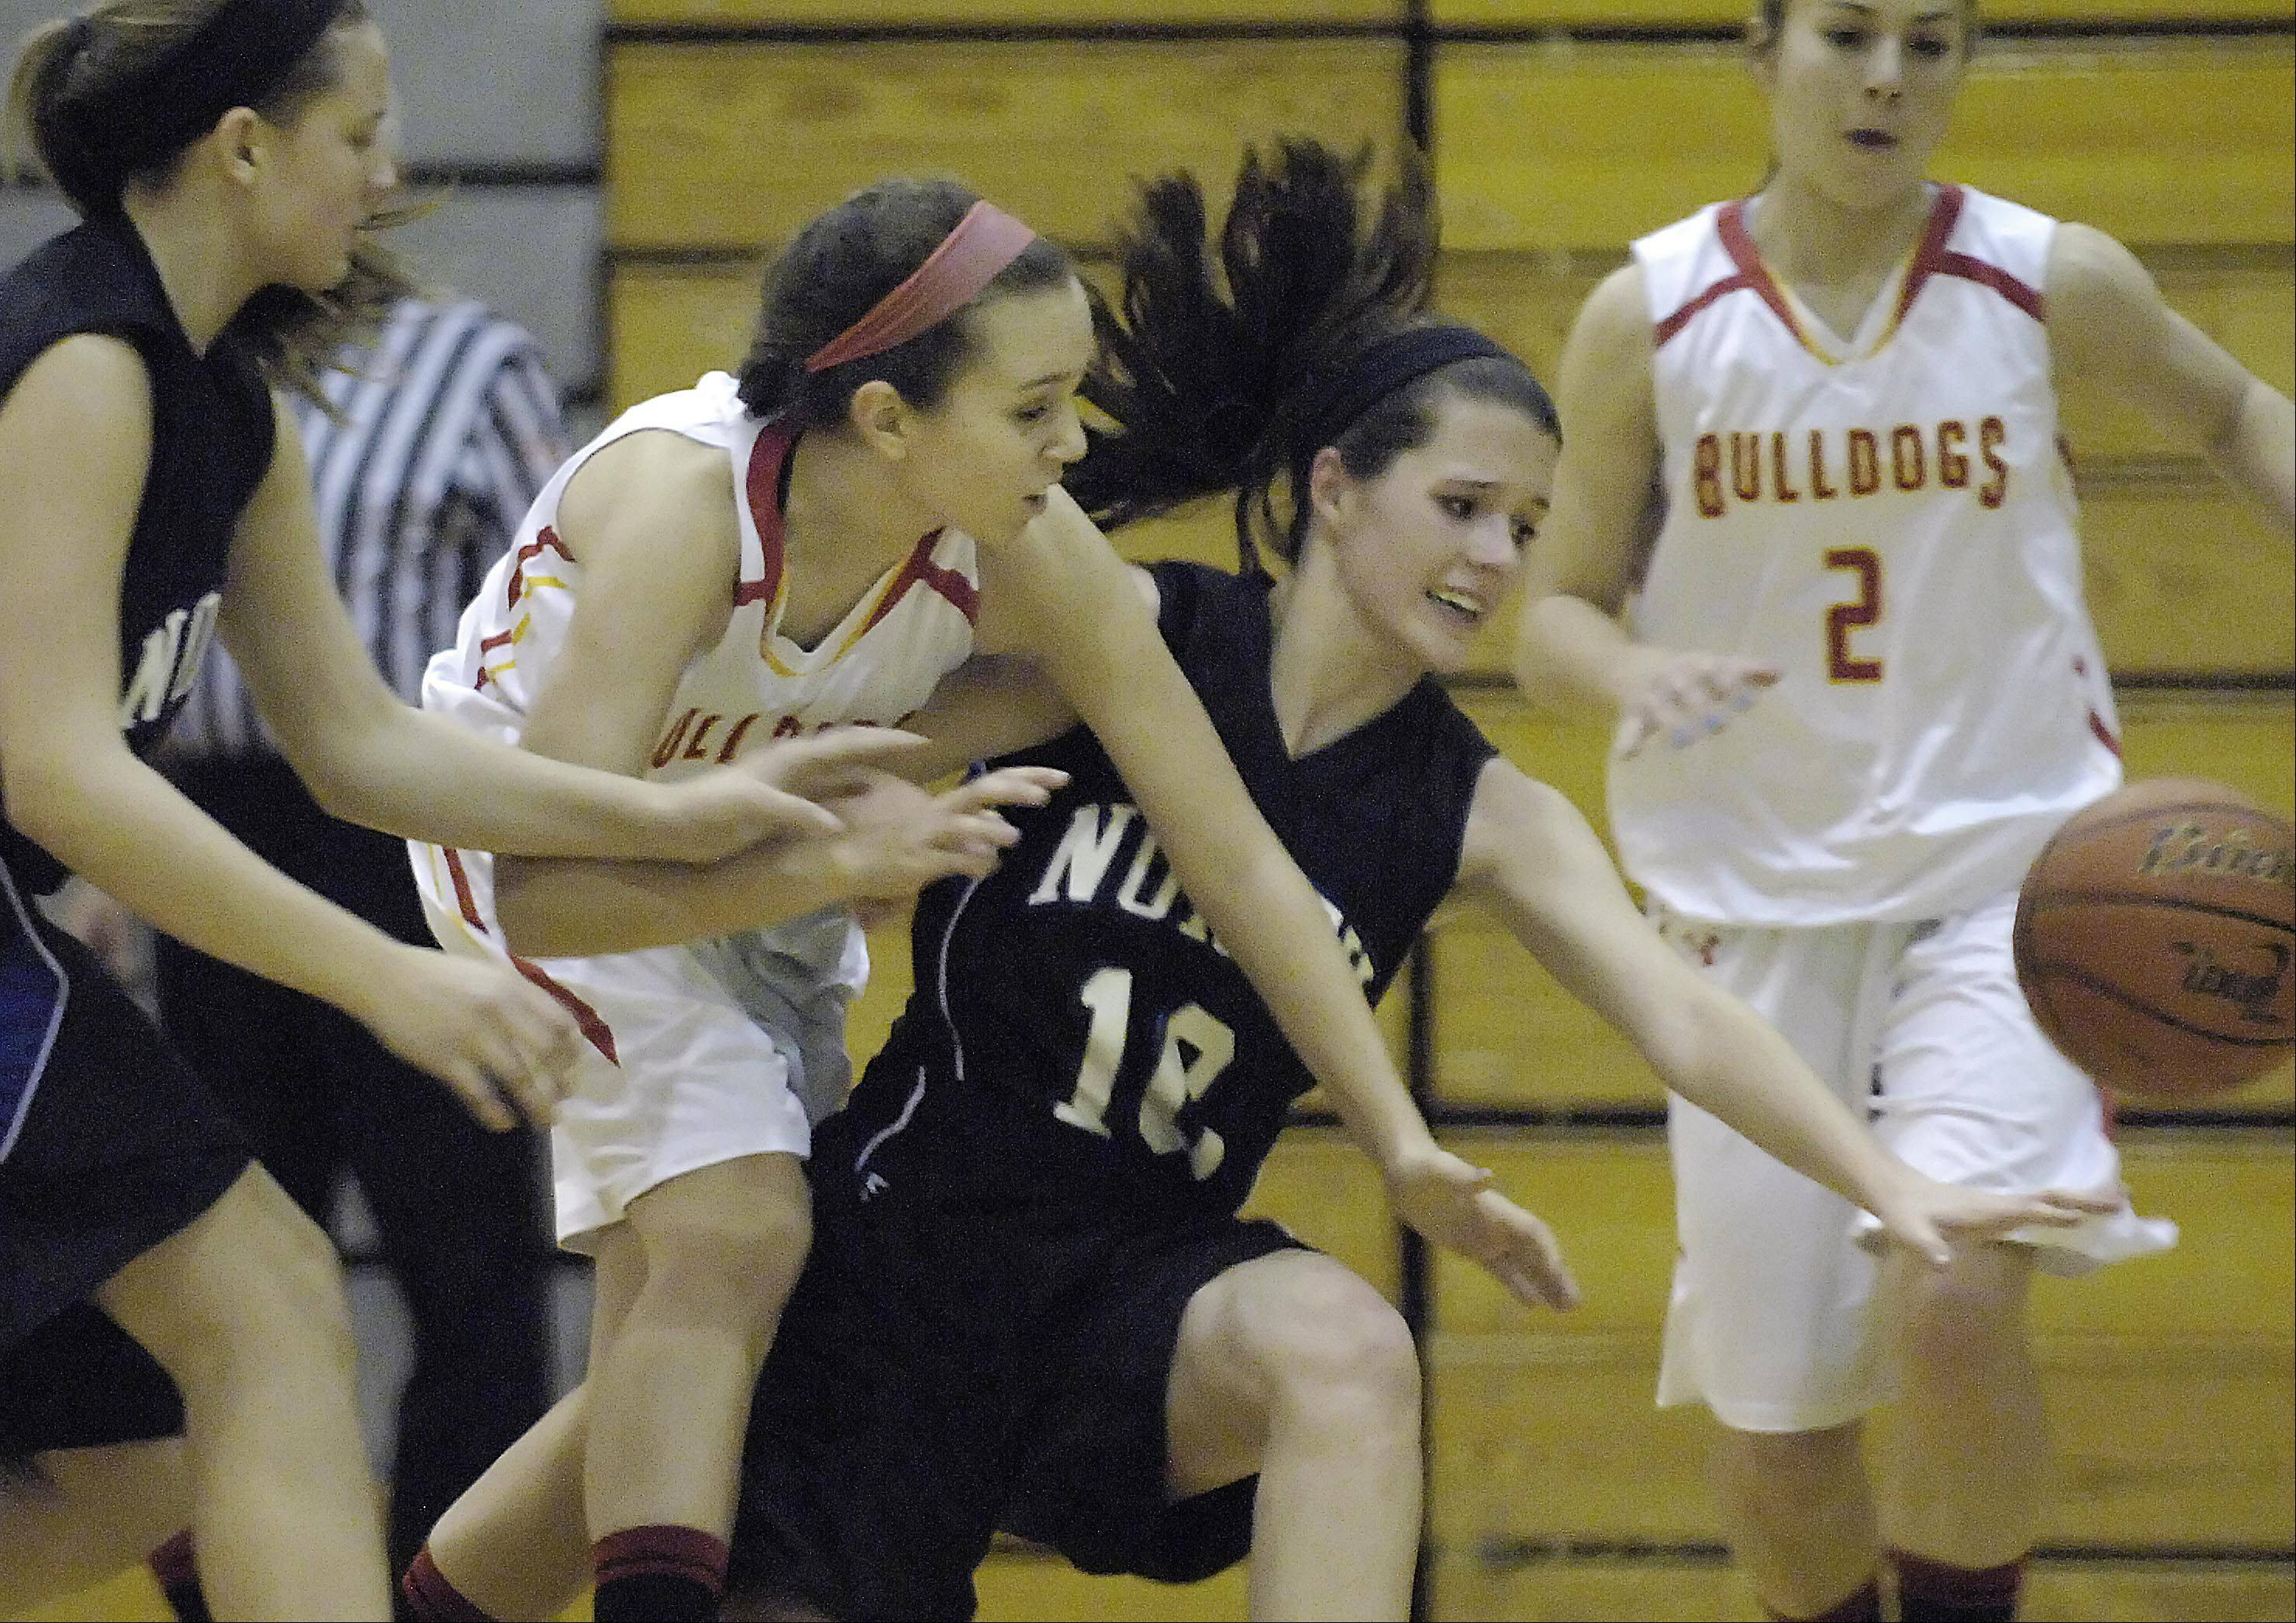 St. Charles North's Ashling Davern and Batavia's Bethany Orman, left, battle for a loose ball Tuesday in Batavia.